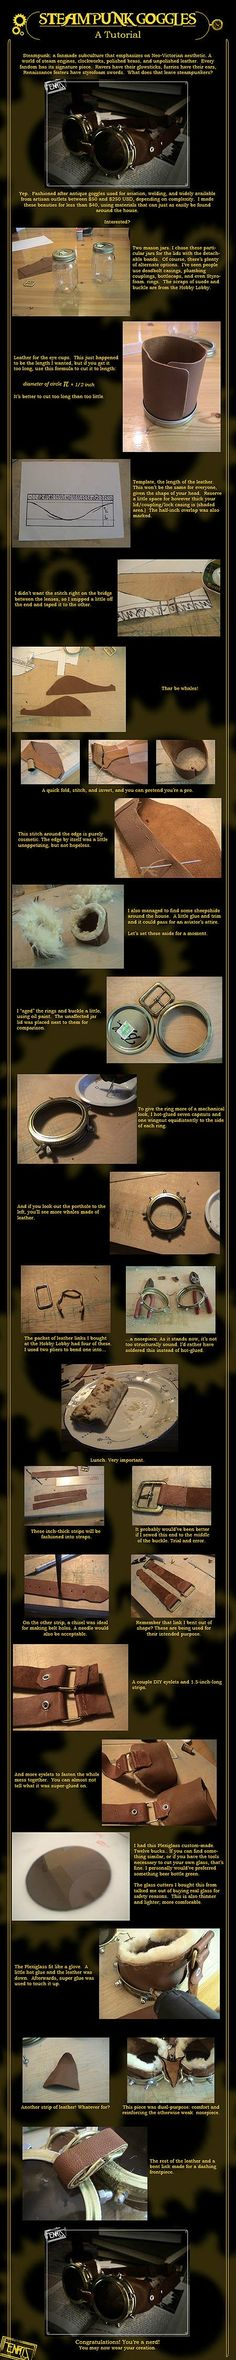 steampunk goggles DIY,  Go To www.likegossip.com to get more Gossip News!